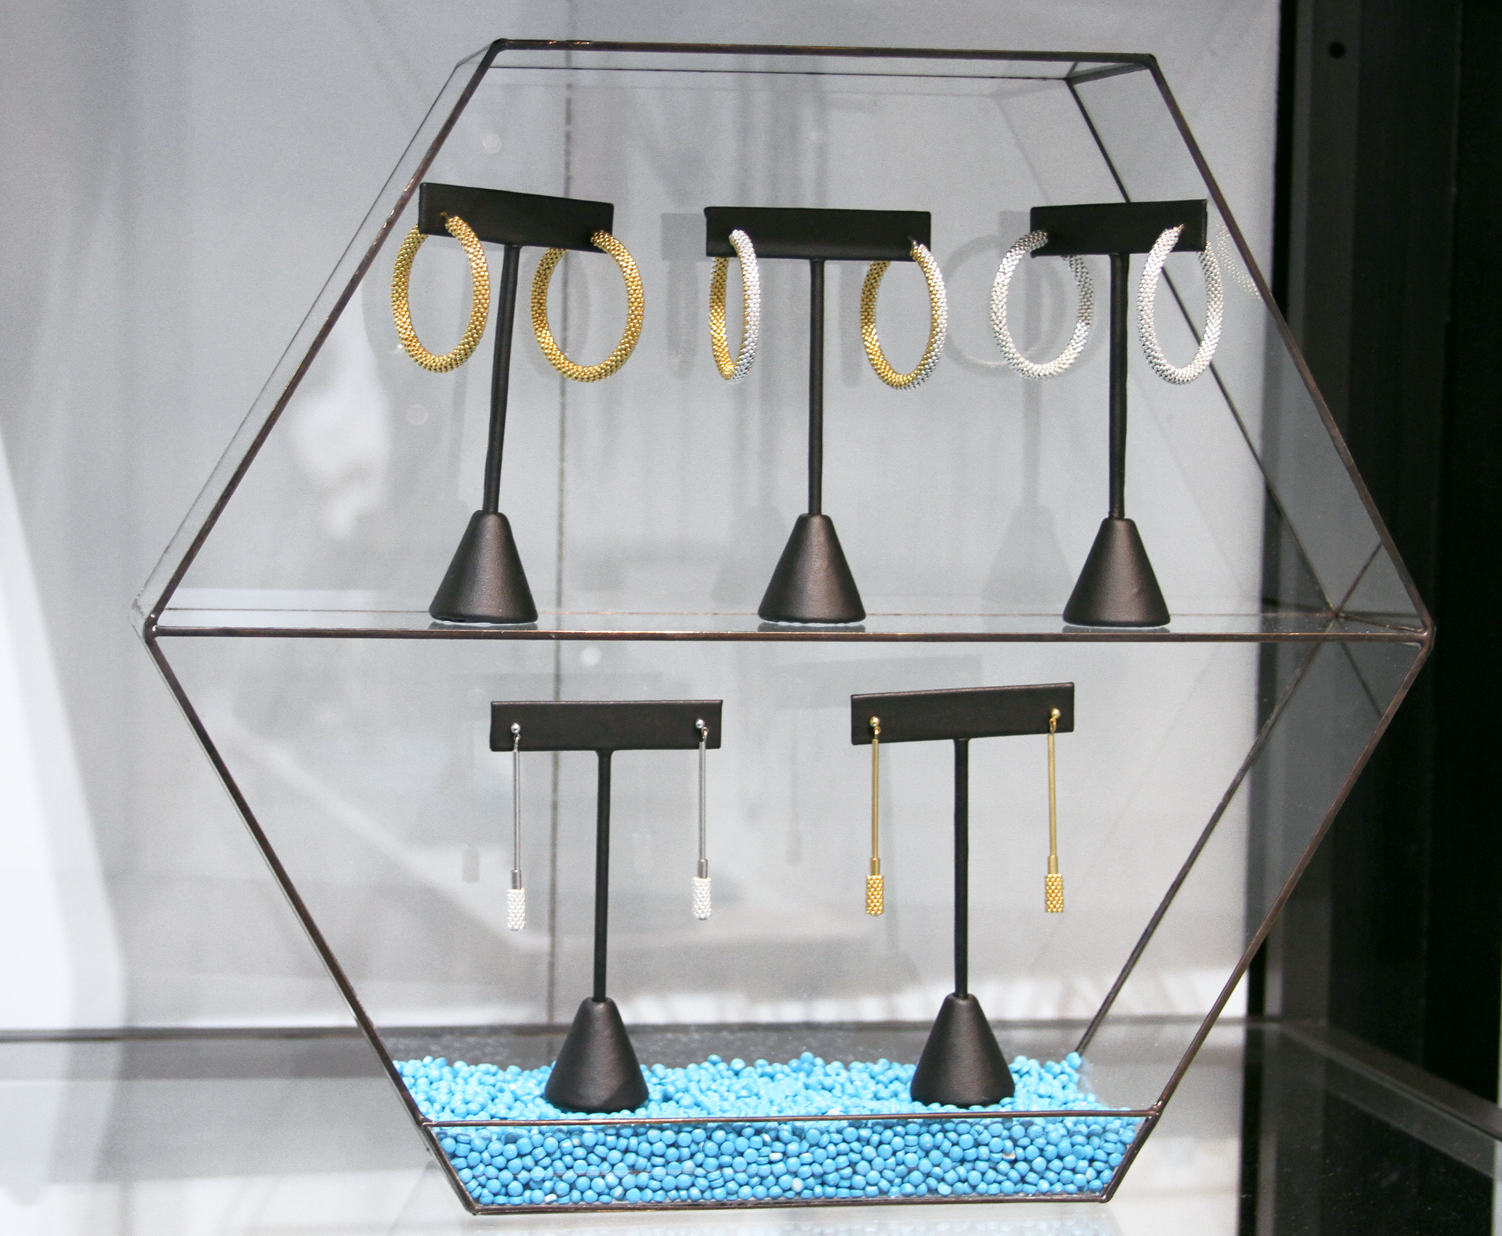 Custom designed glass terrariums for use as jewelry displays